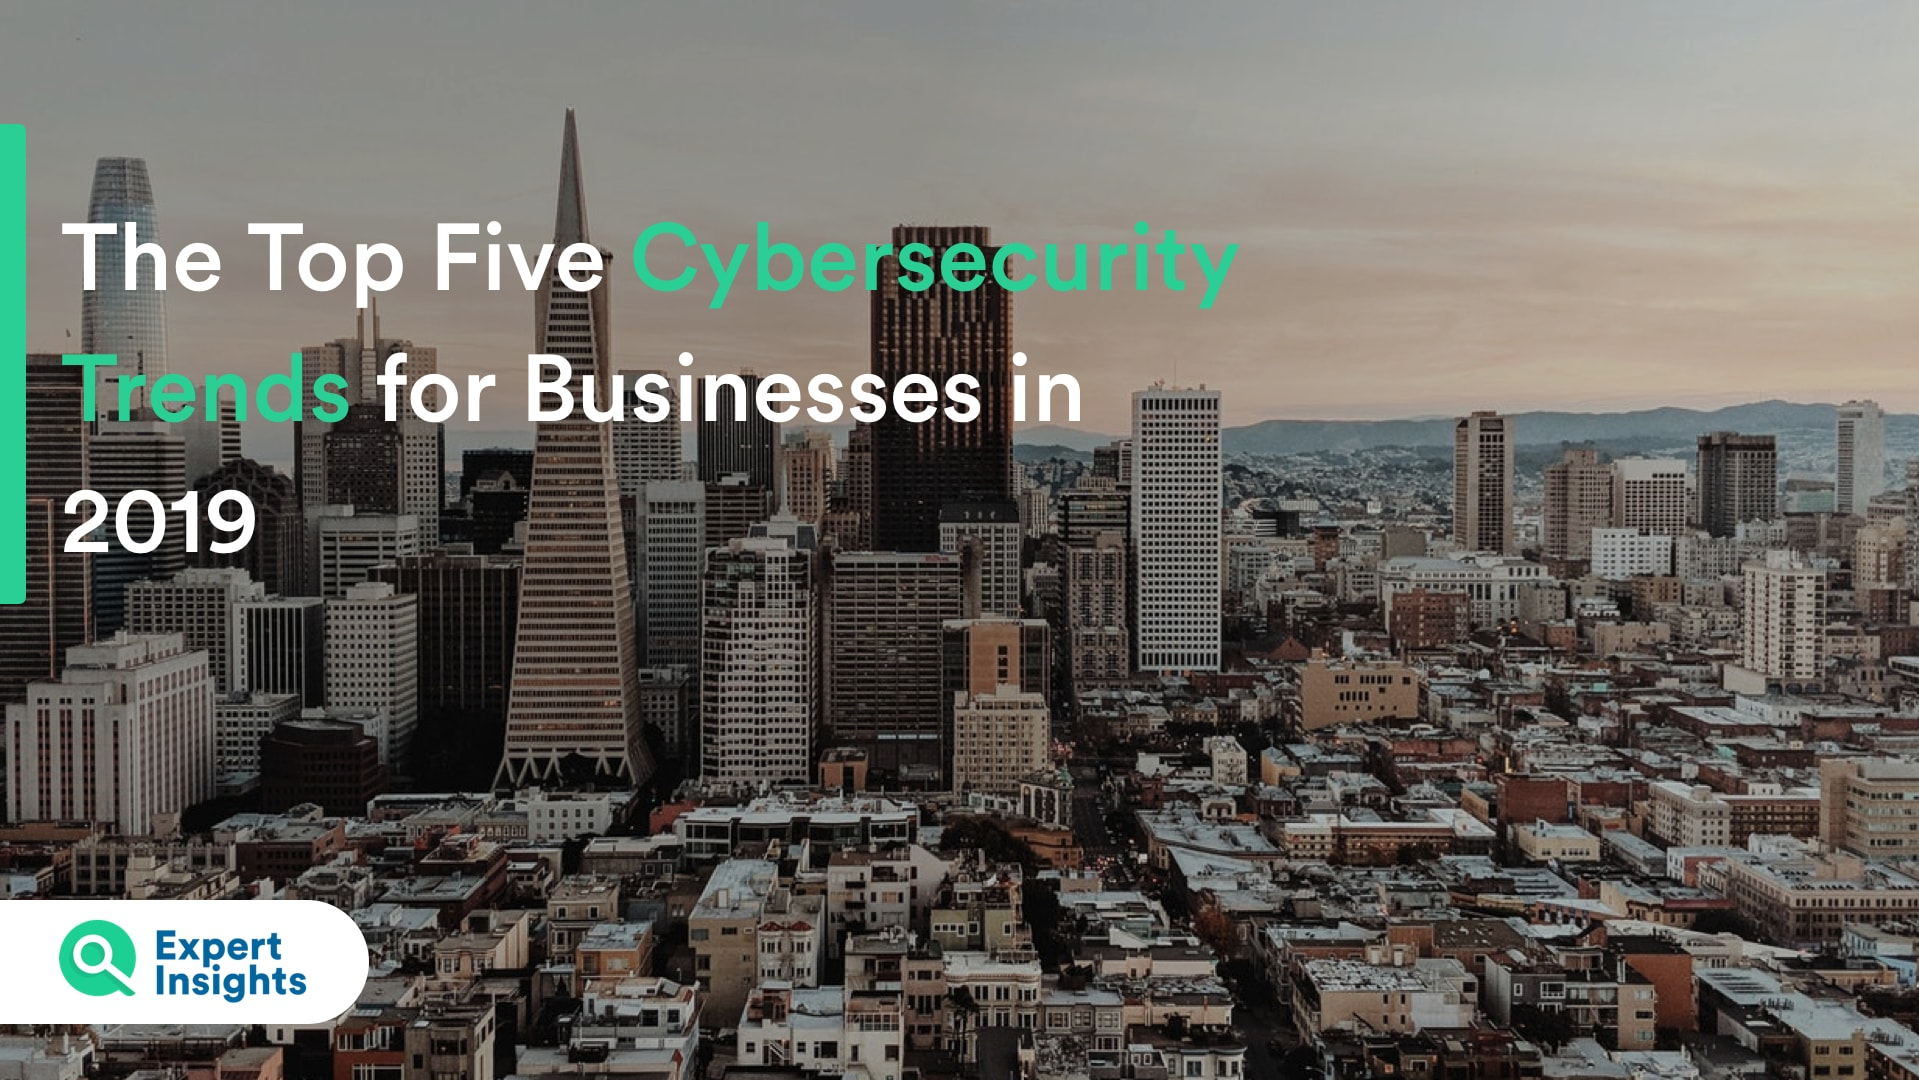 top 5 cybersecurity trends for businesses - expert insights